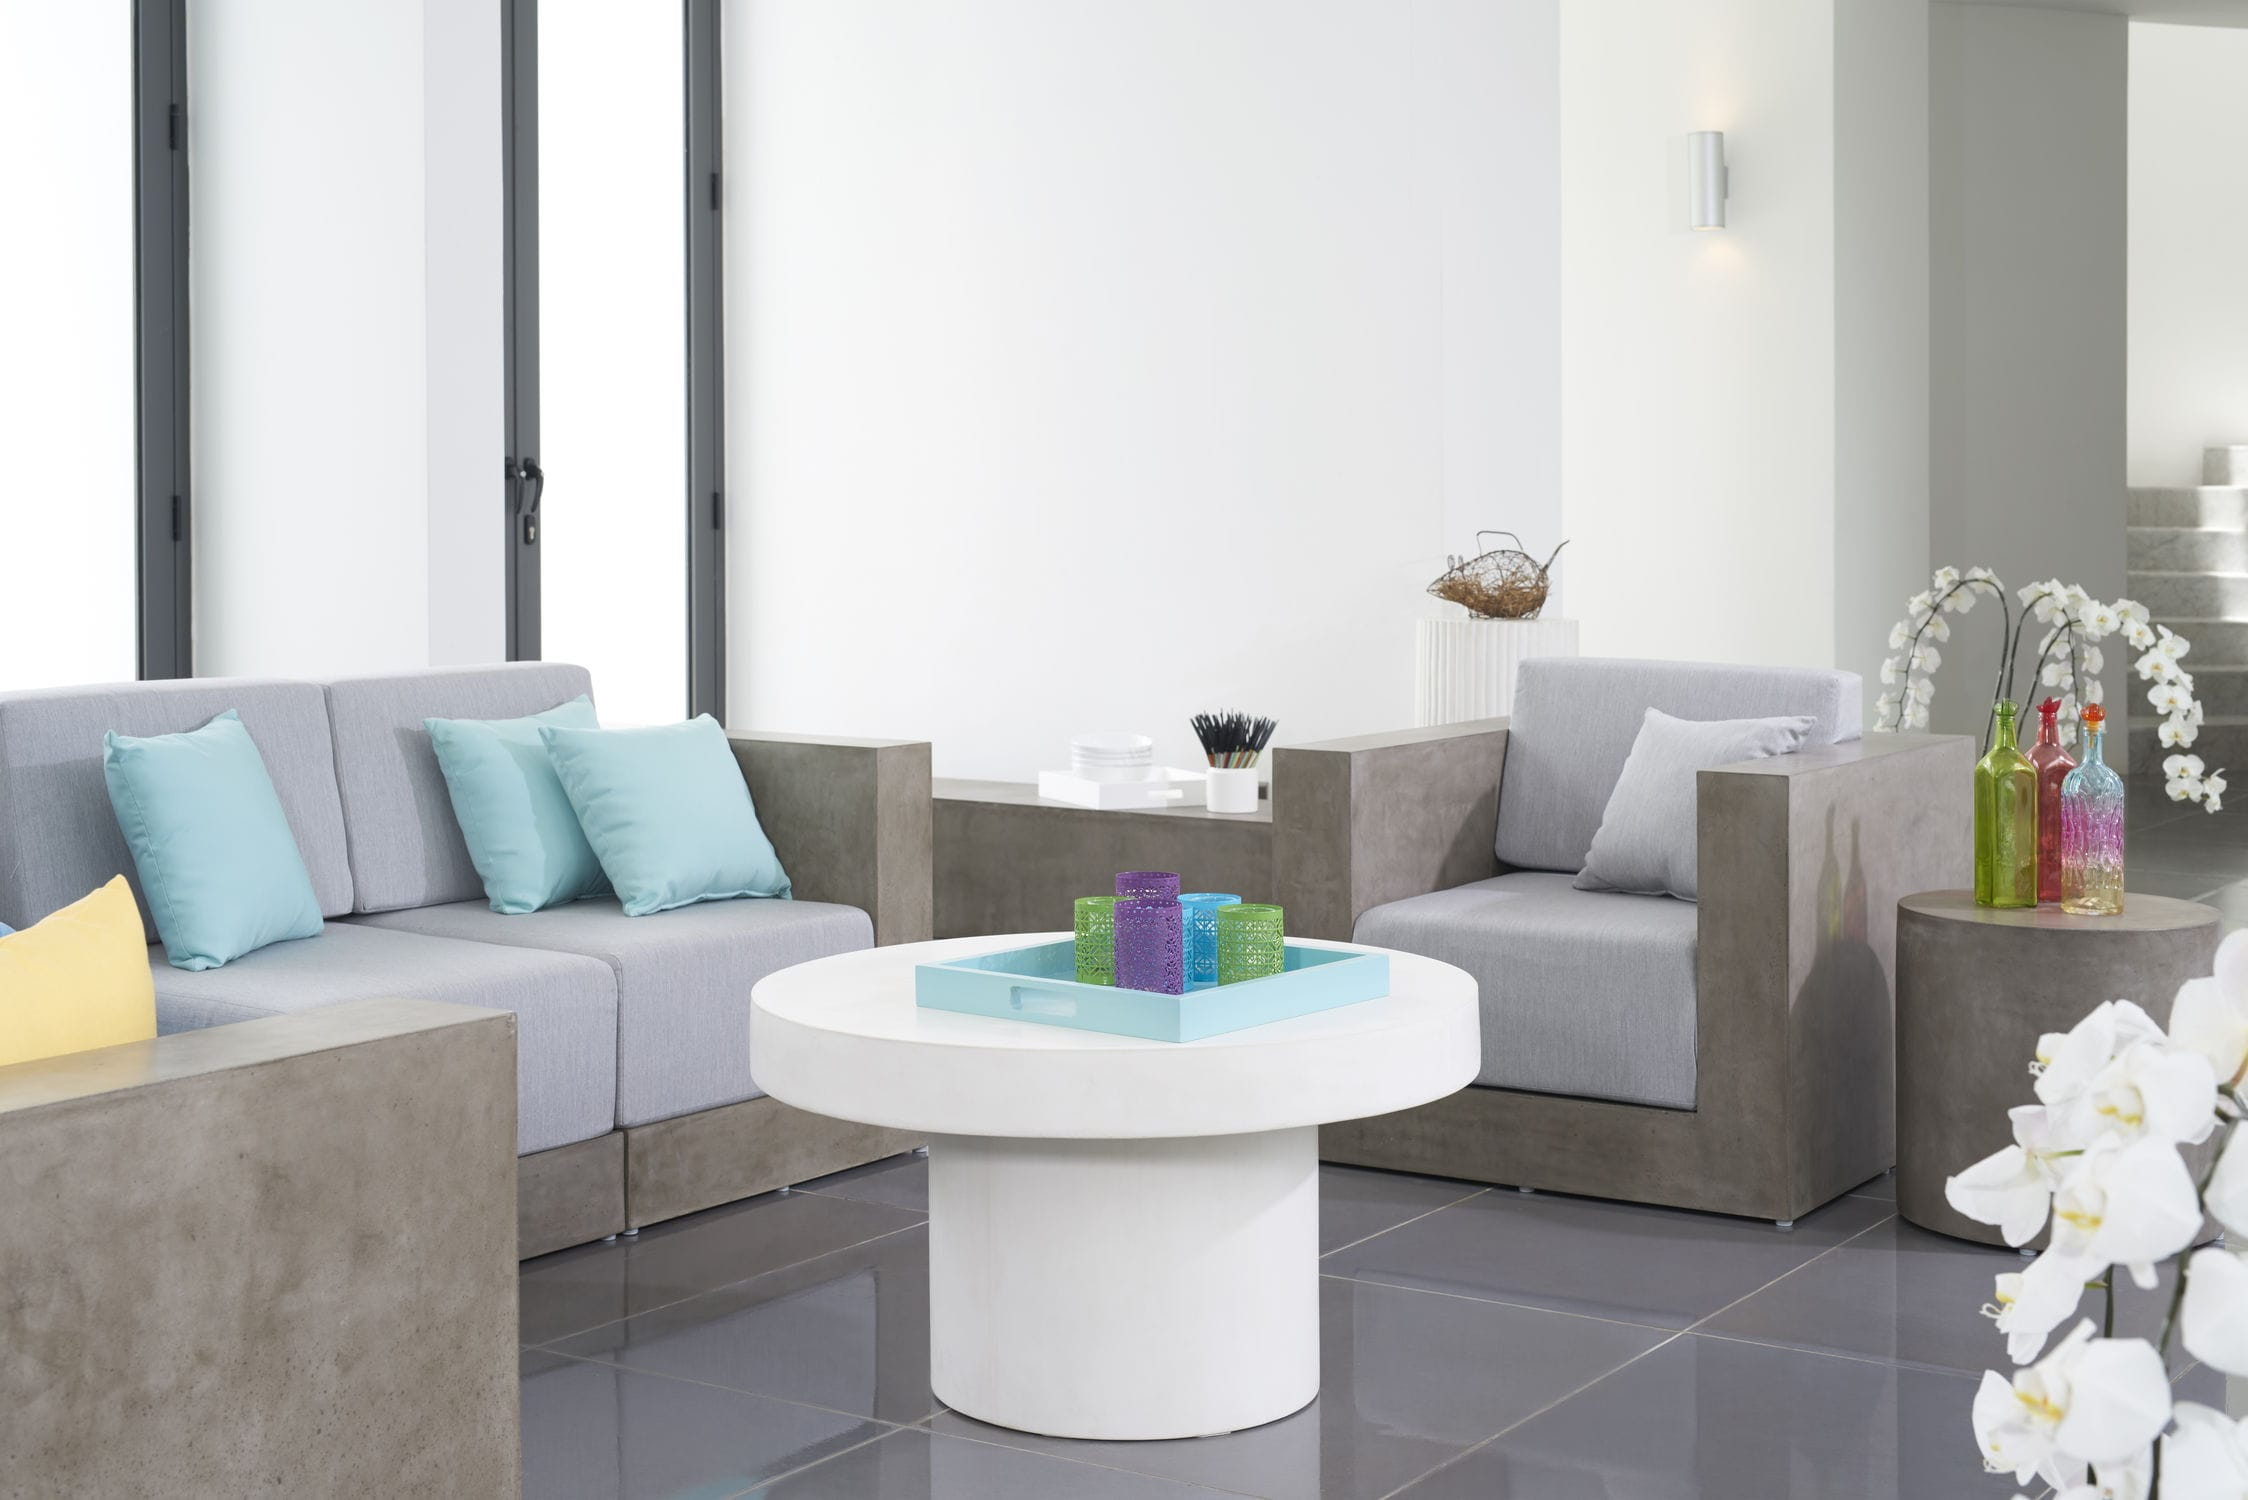 Contemporary Coffee Table.Contemporary Coffee Table Concrete Round Outdoor